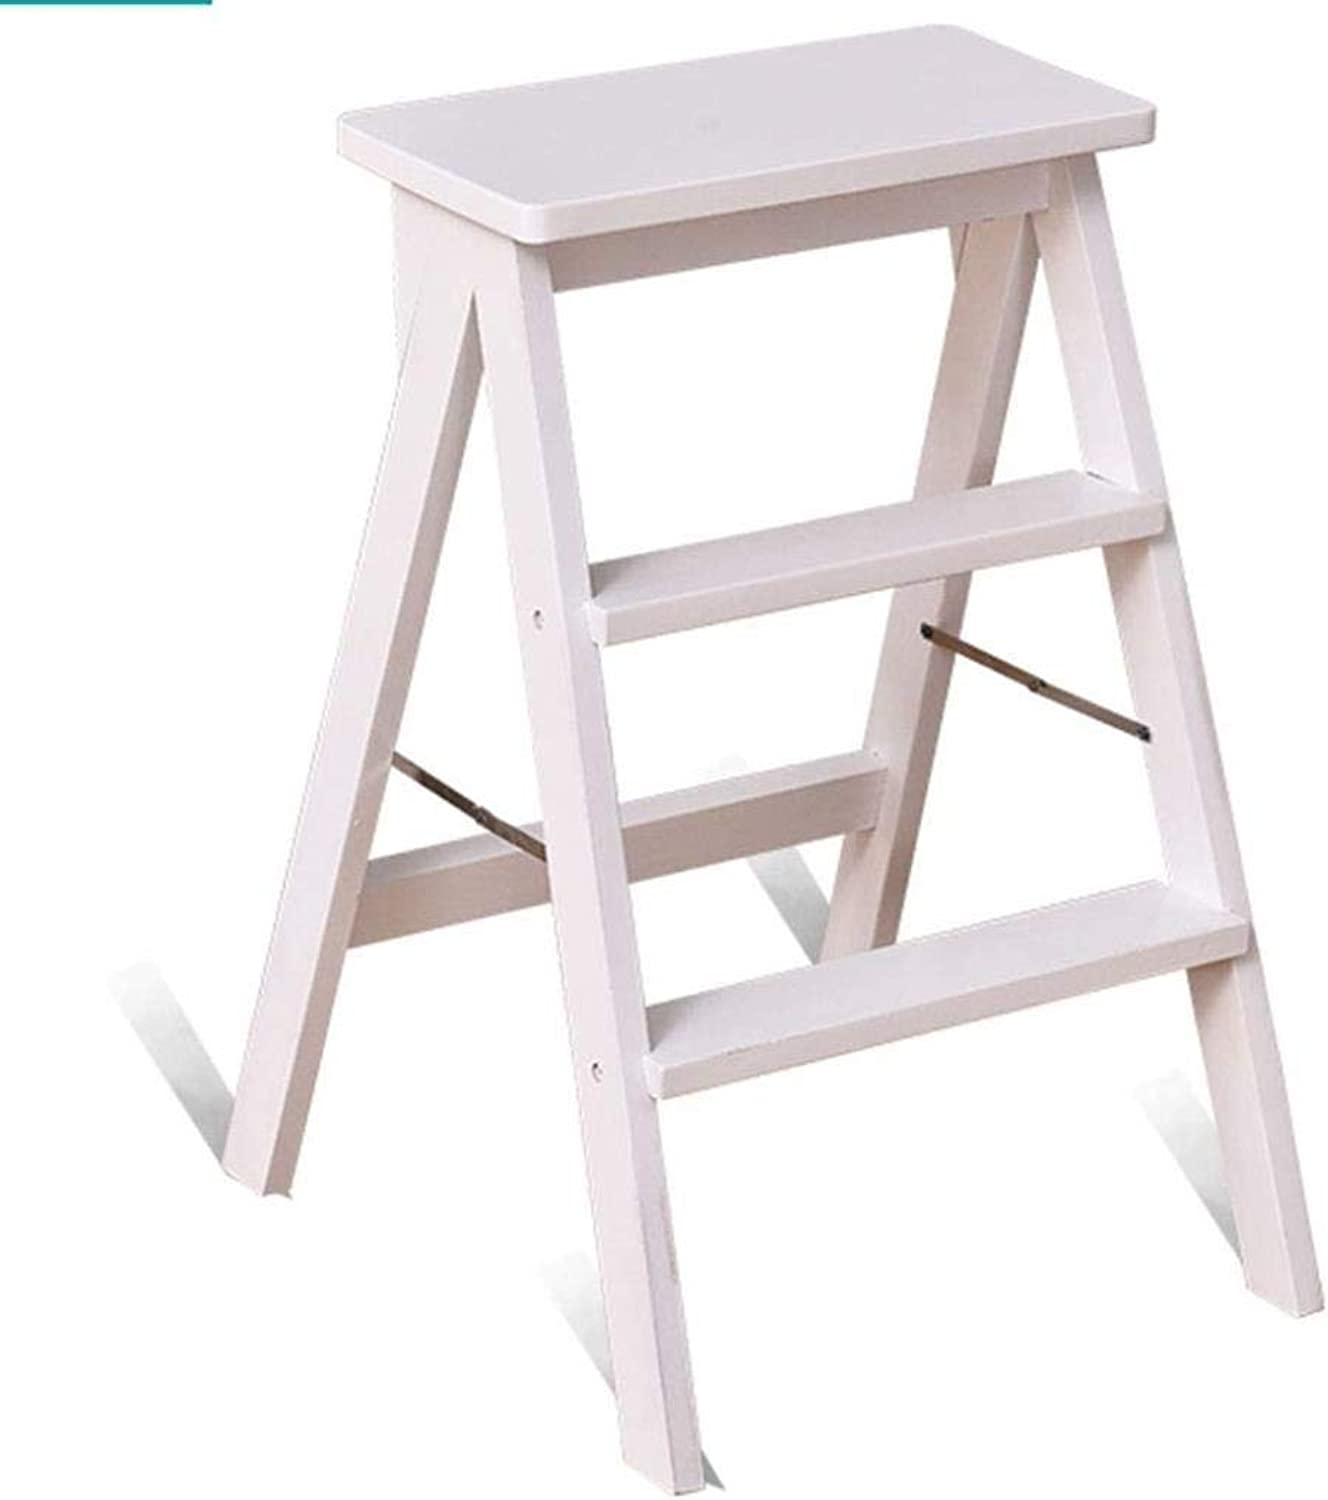 Solid Wood Step Stool Home Kitchen Ascends Stool Folding Wooden Ladder Living Room Stool Portable Folding Chair Ladder Dual-use ZXMDMZ (color   White)